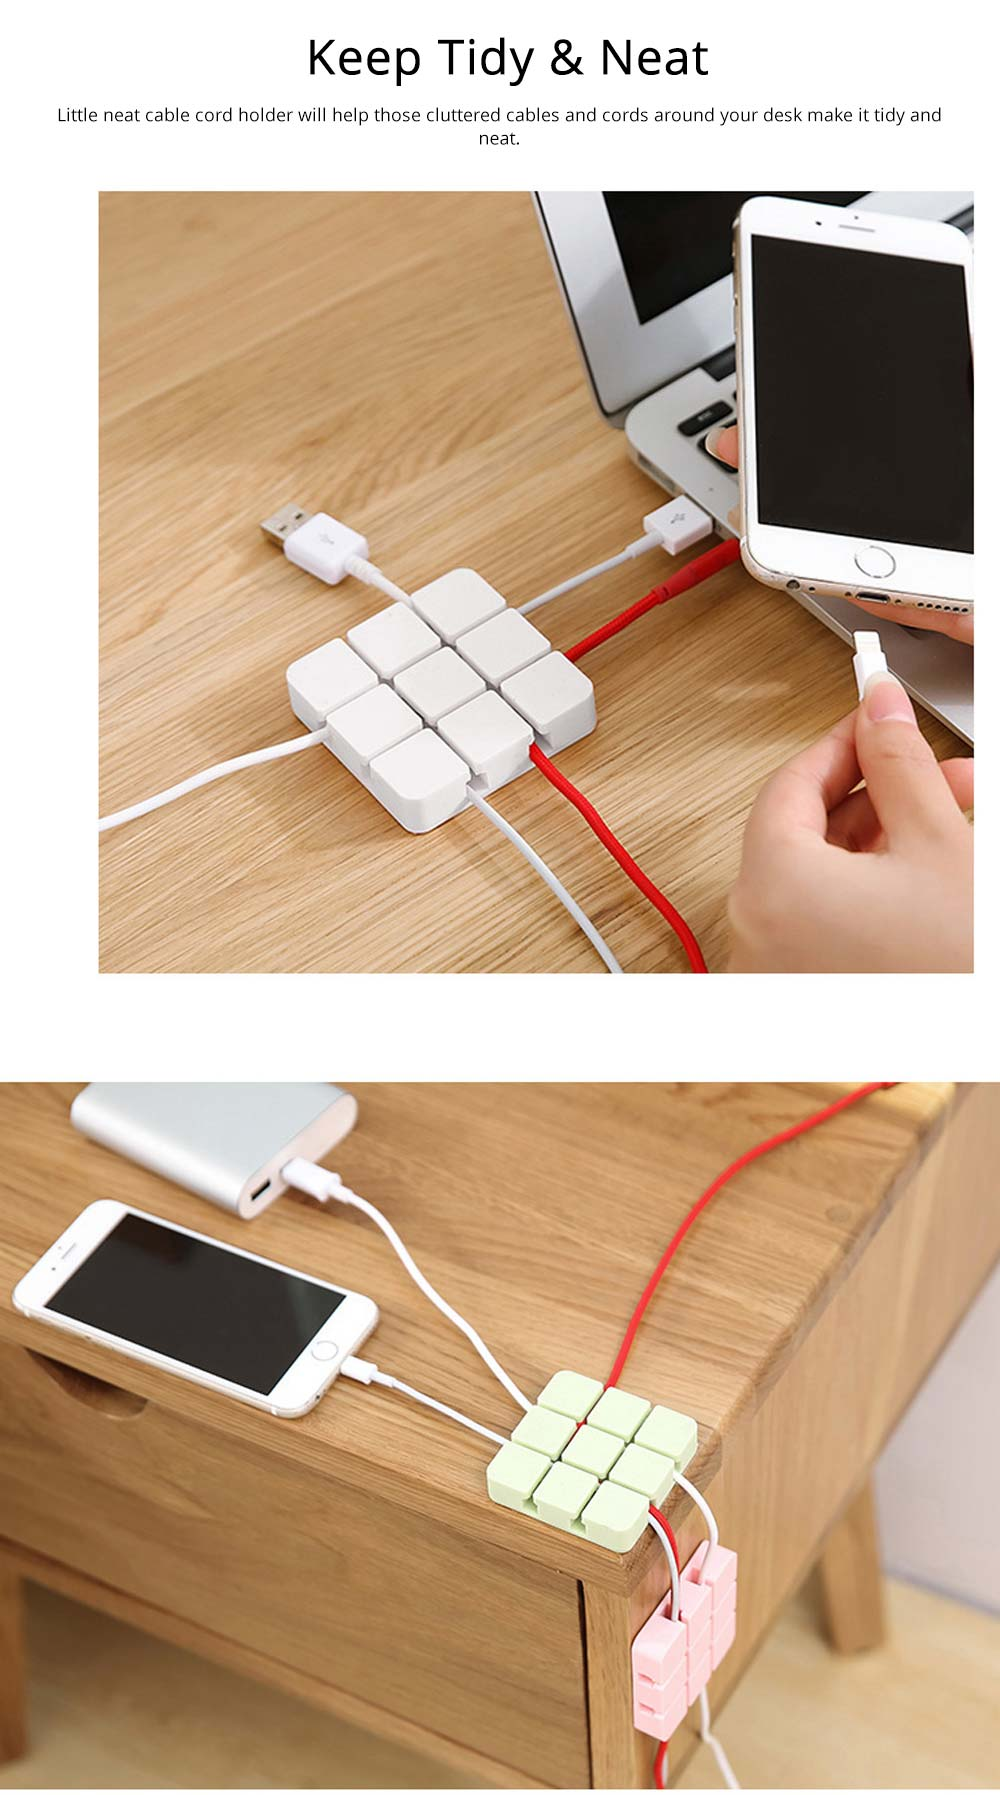 Mini Silicone Cable Management Wire Holder Adhesive Charging Cable Storage Hub Home Office Car Desk Accessories 3